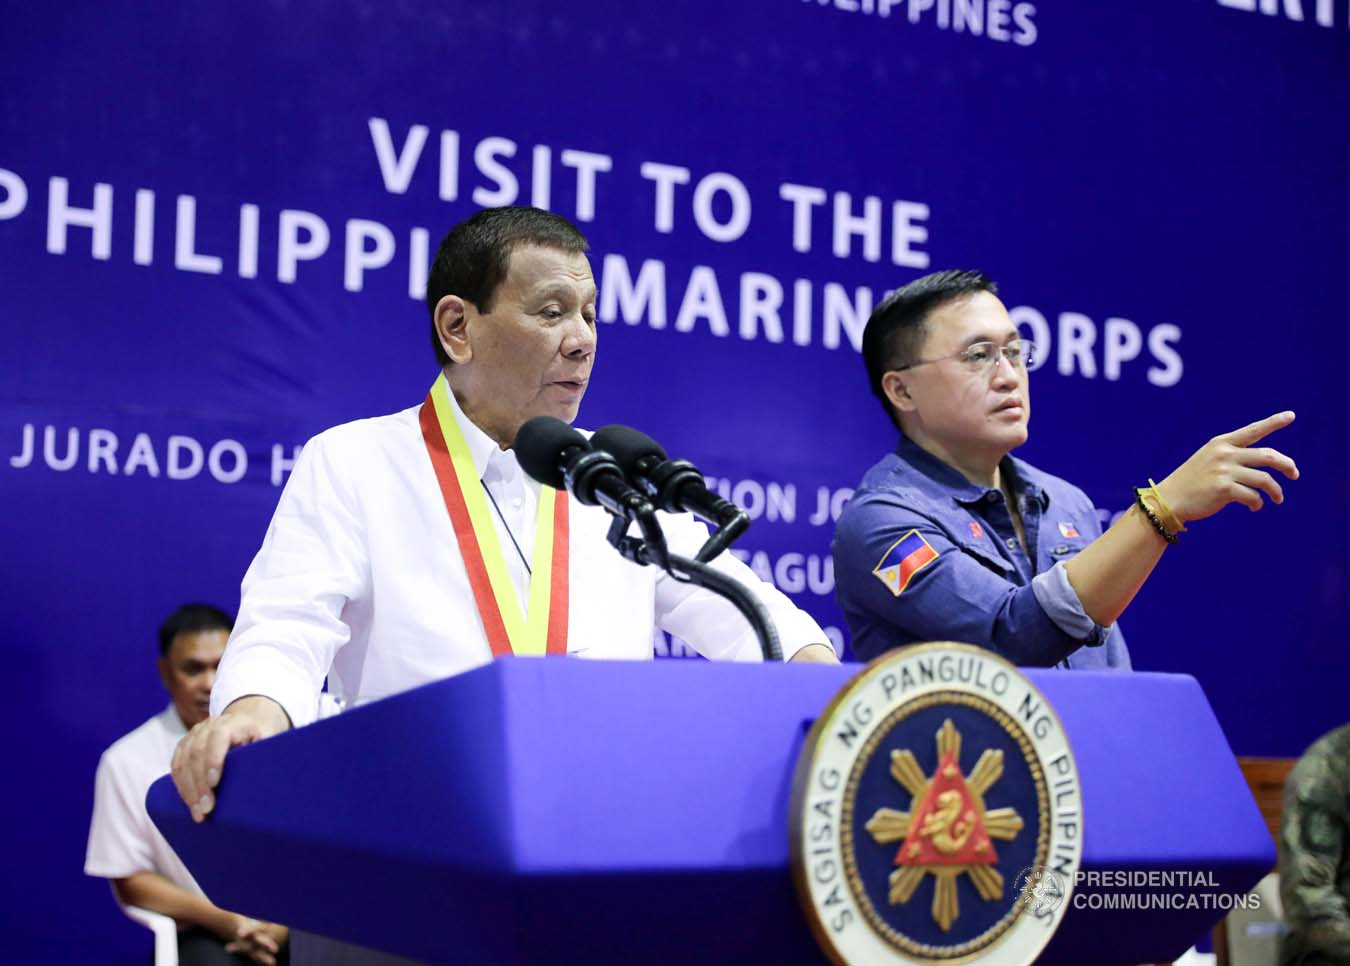 """President Rodrigo Roa Duterte confers with Senator Christopher """"Bong"""" Go while delivering a speech during his visit to the Philippine Marine Corps headquarters at Fort Bonifacio in Taguig City on January 13, 2020. ALFRED FRIAS/PRESIDENTIAL PHOTO"""